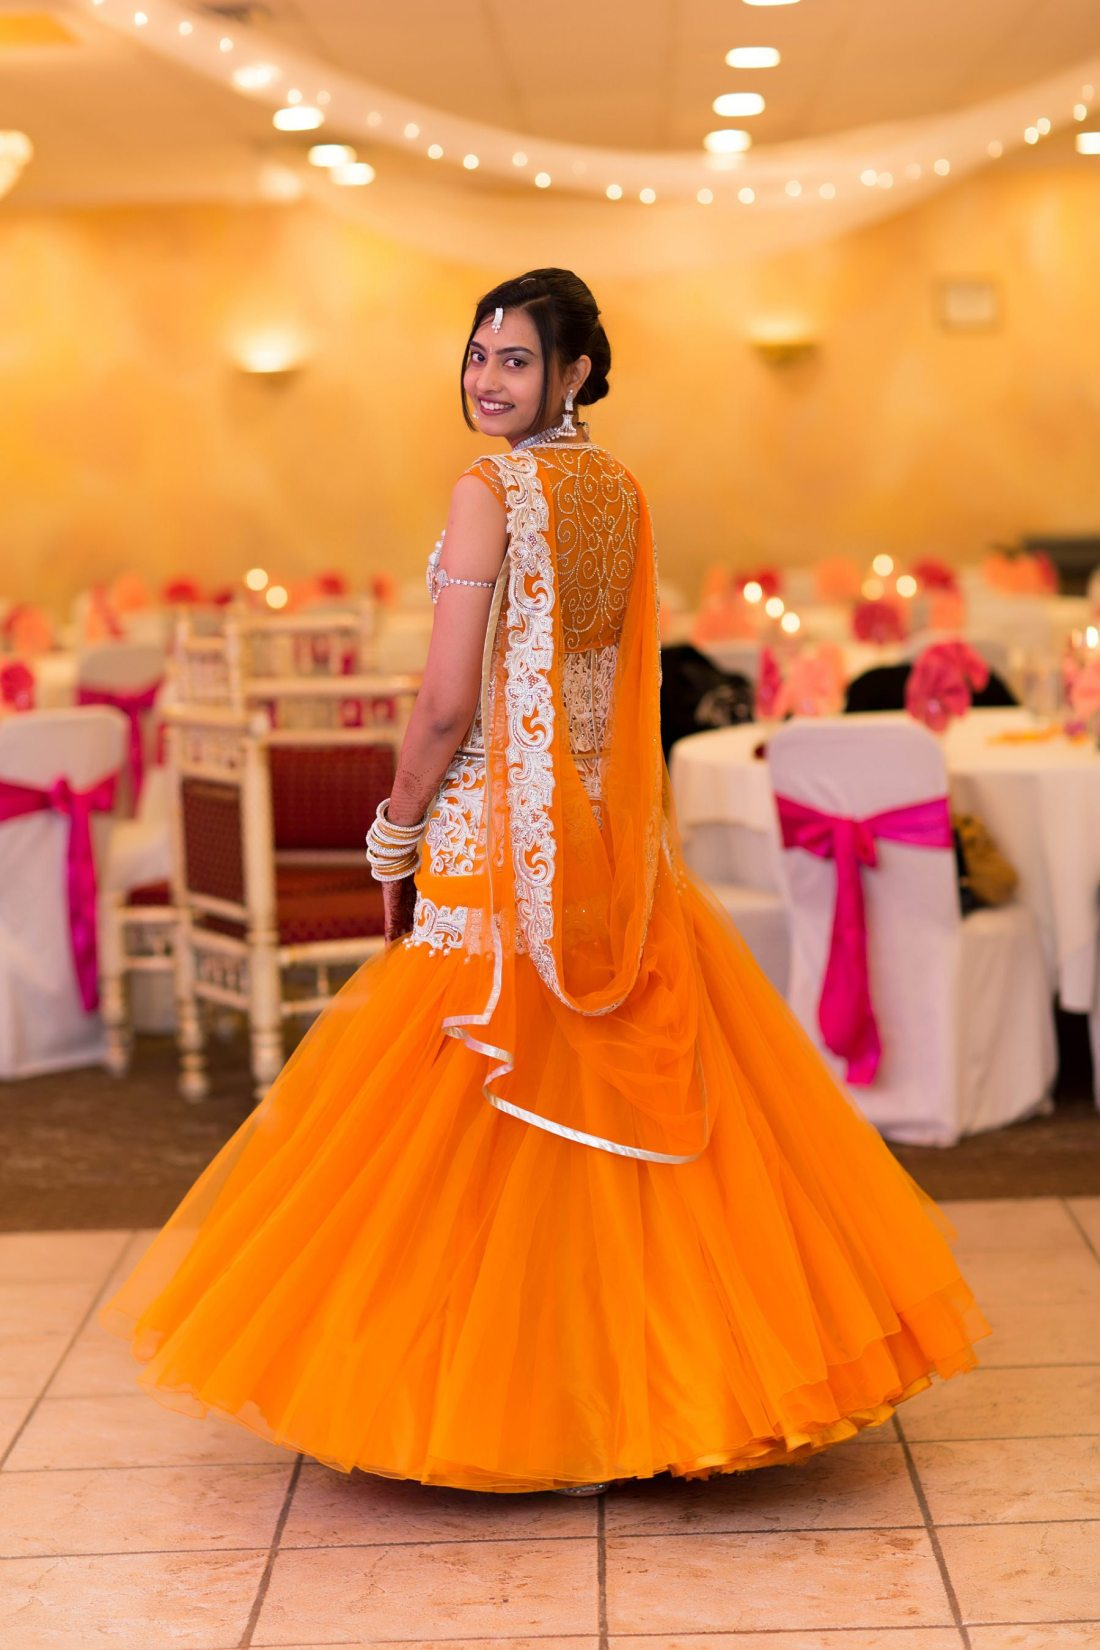 Payal_Shyam_Engagement_0015